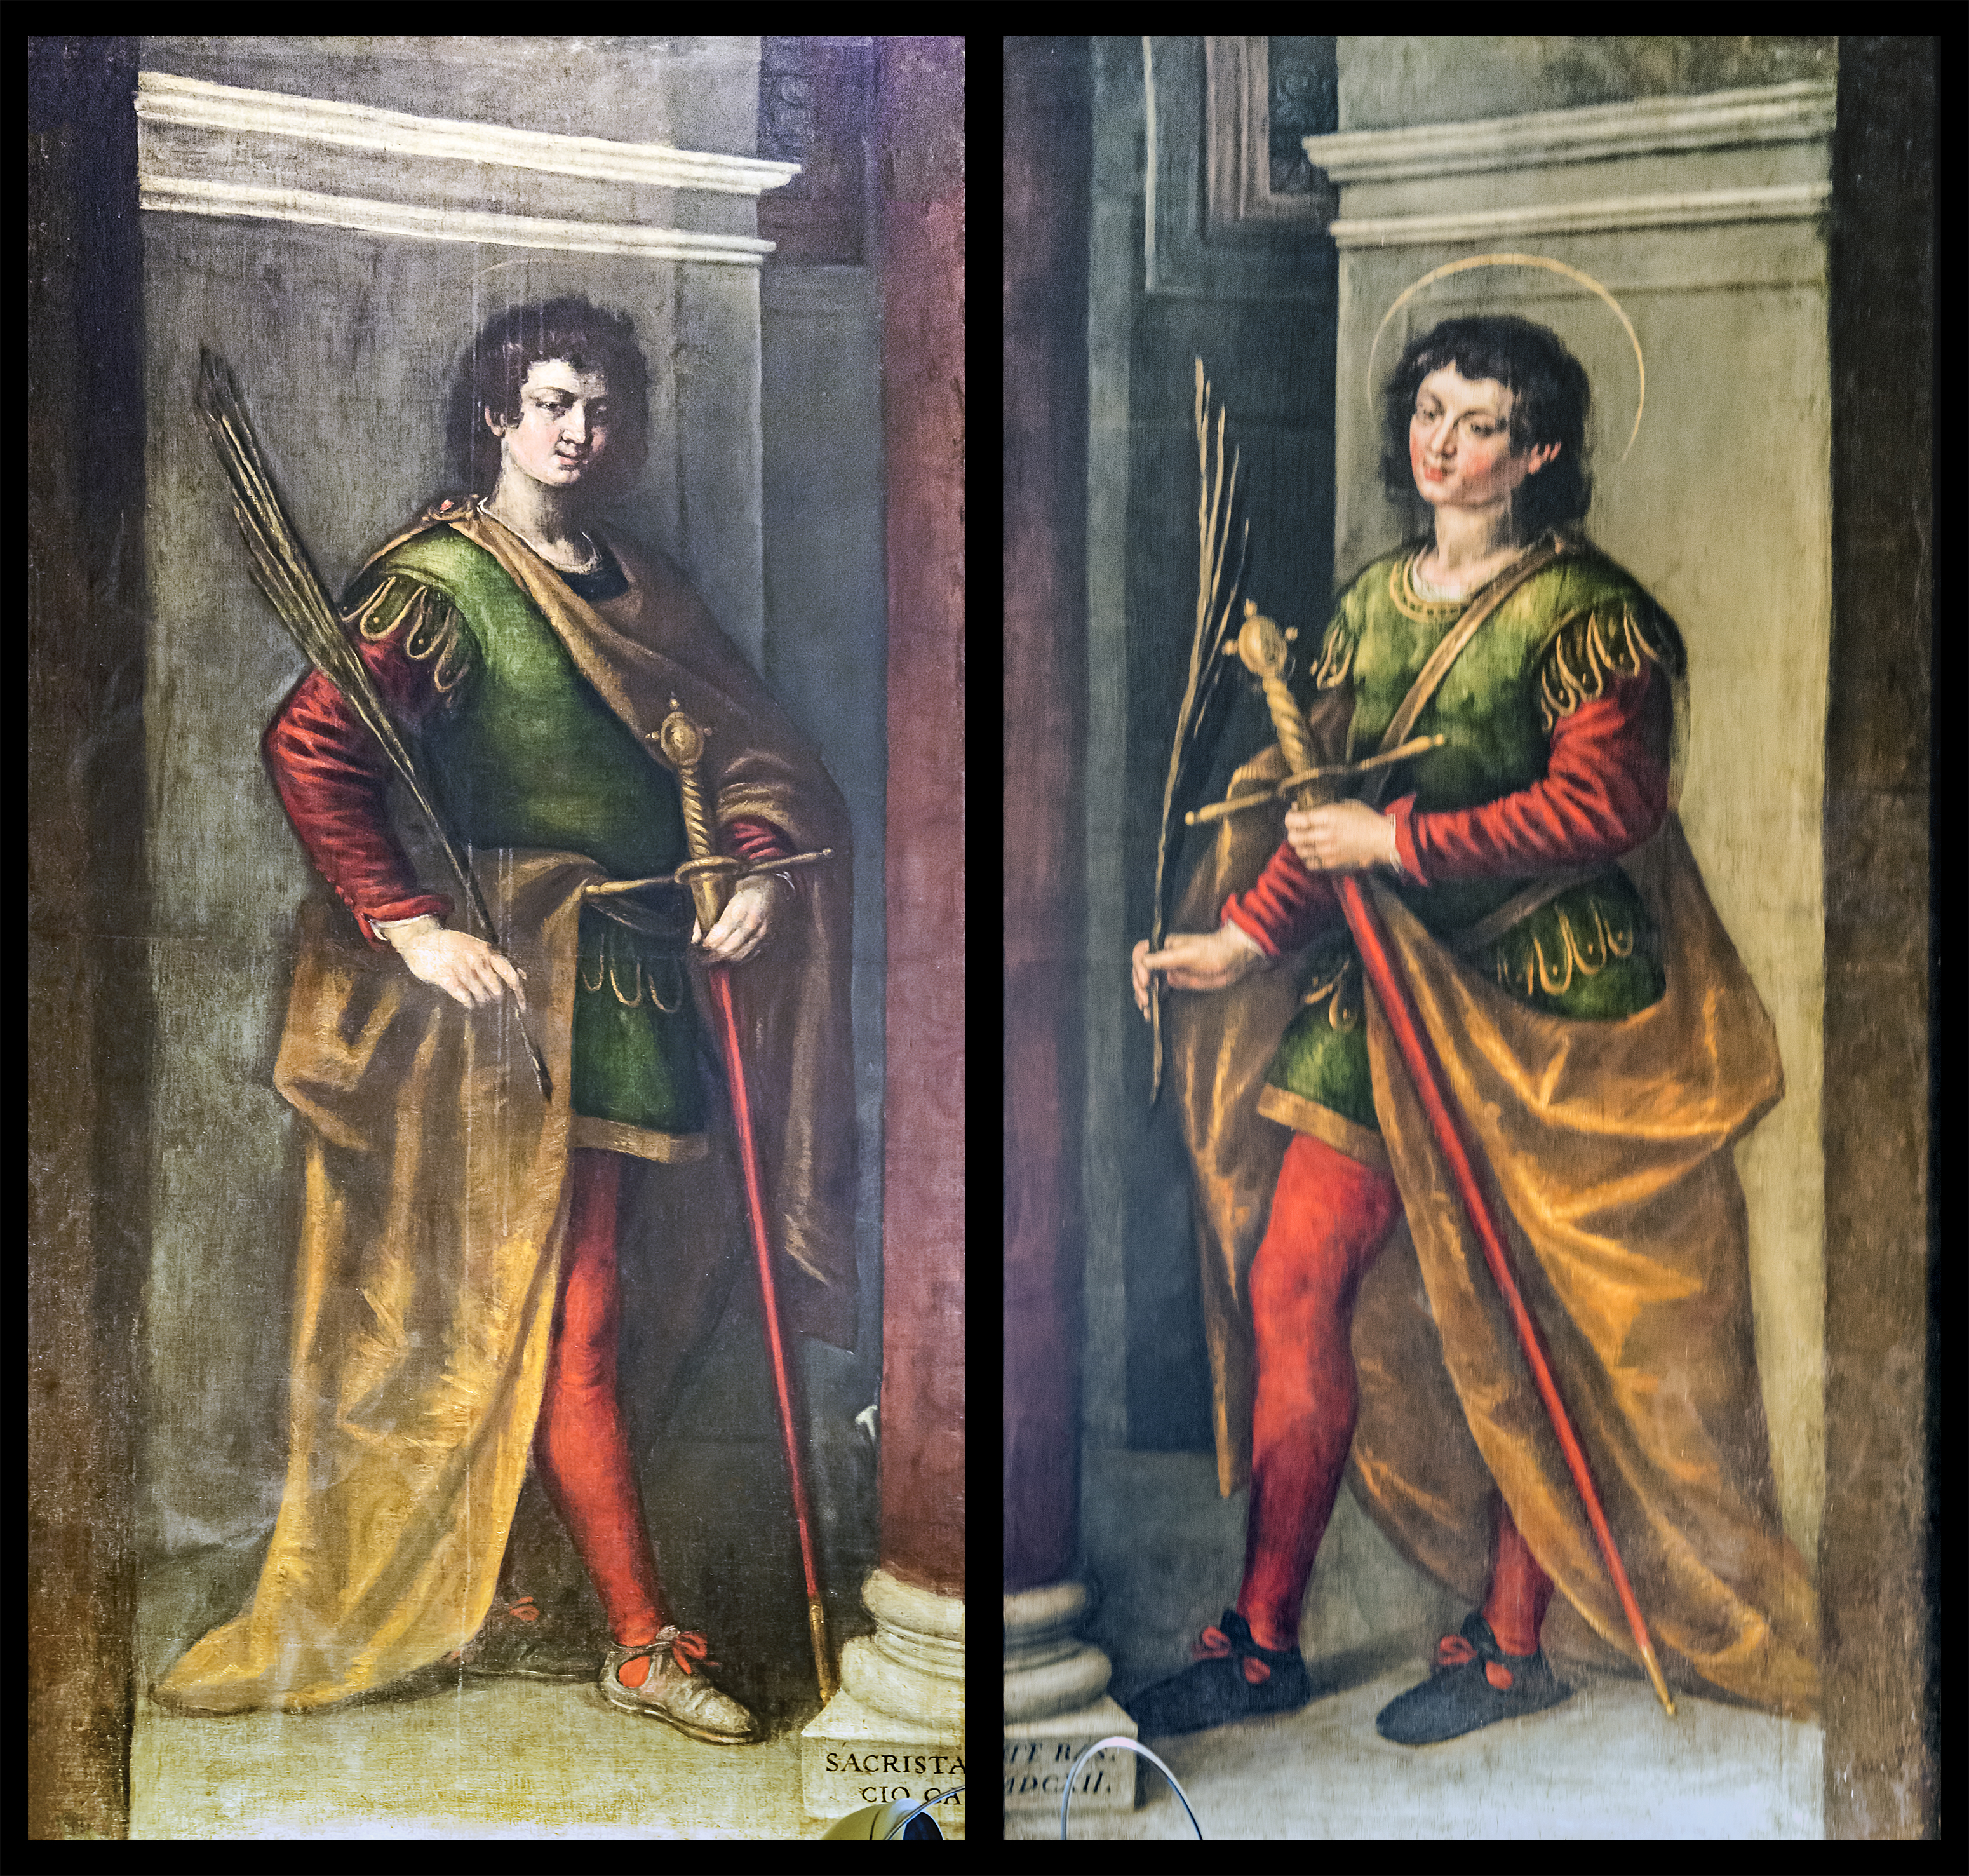 Sacristy - Santi Giovanni e Paolo (Venice) - Two paintings by Pietro Mera representing Saint John and Saint Paul to whom the basilica is dedicated.